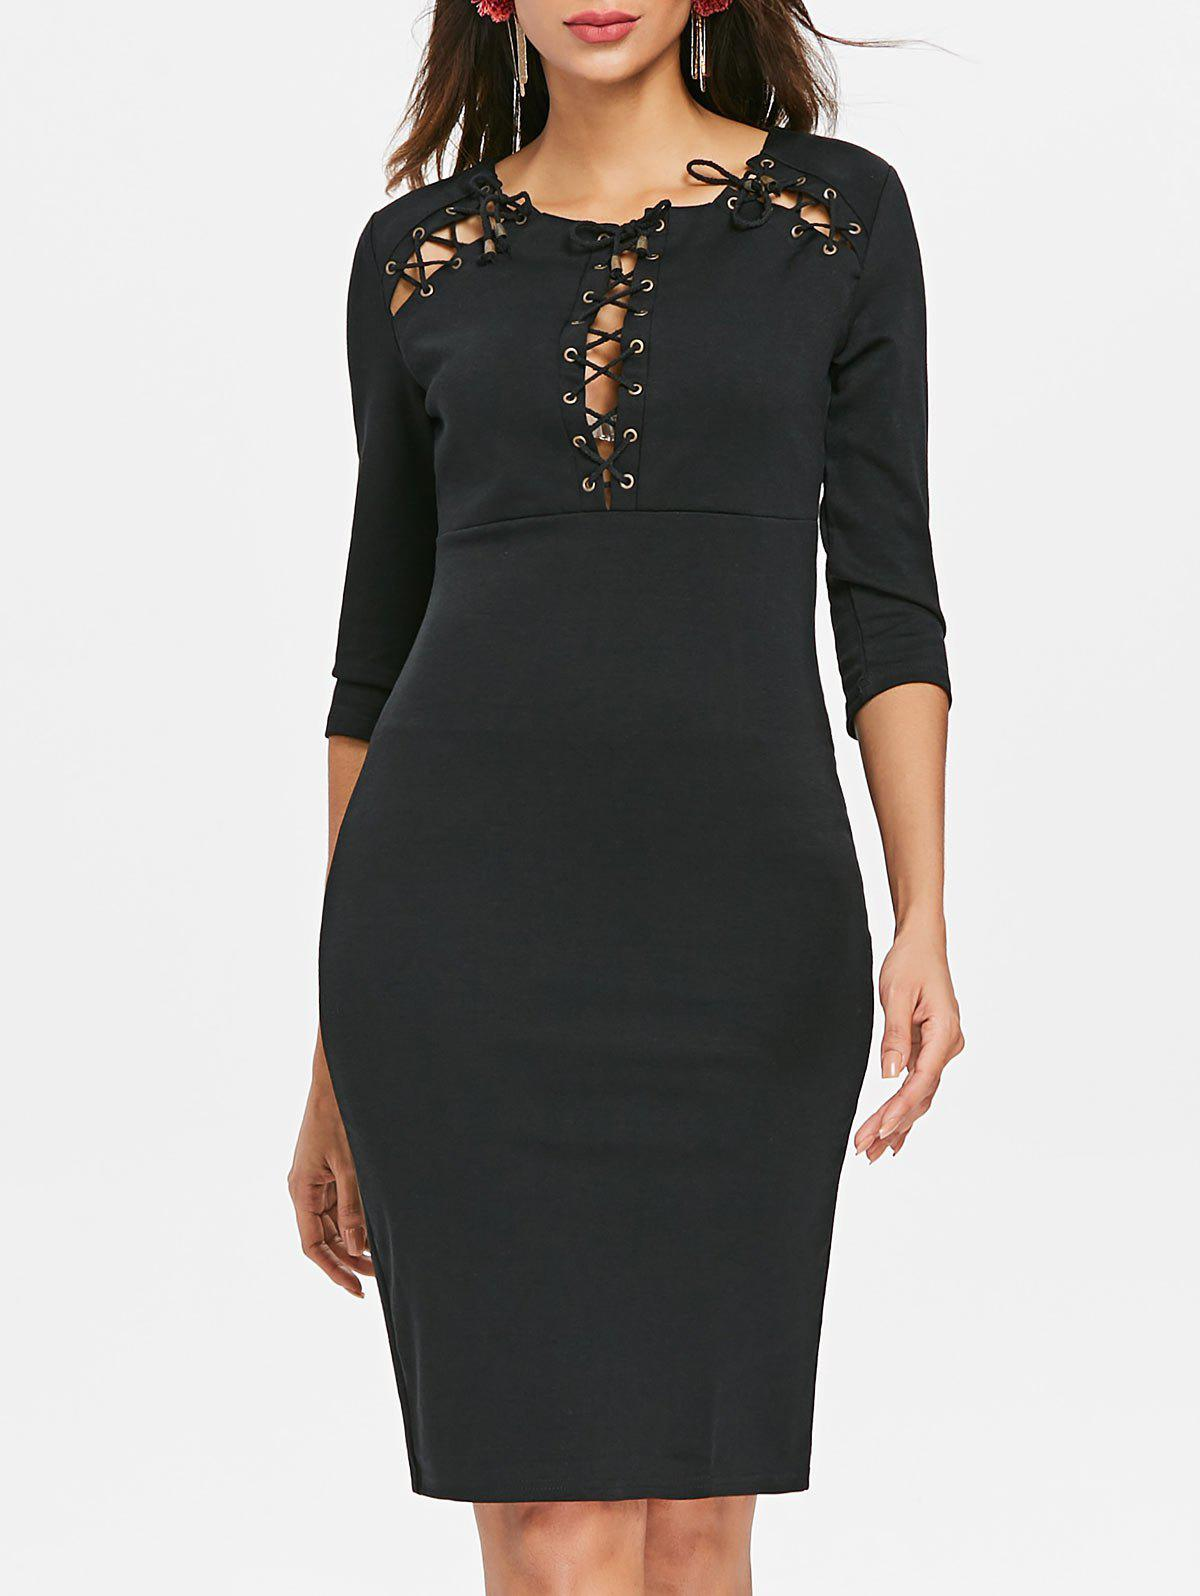 Lace Up Bodycon Dress - BLACK 2XL